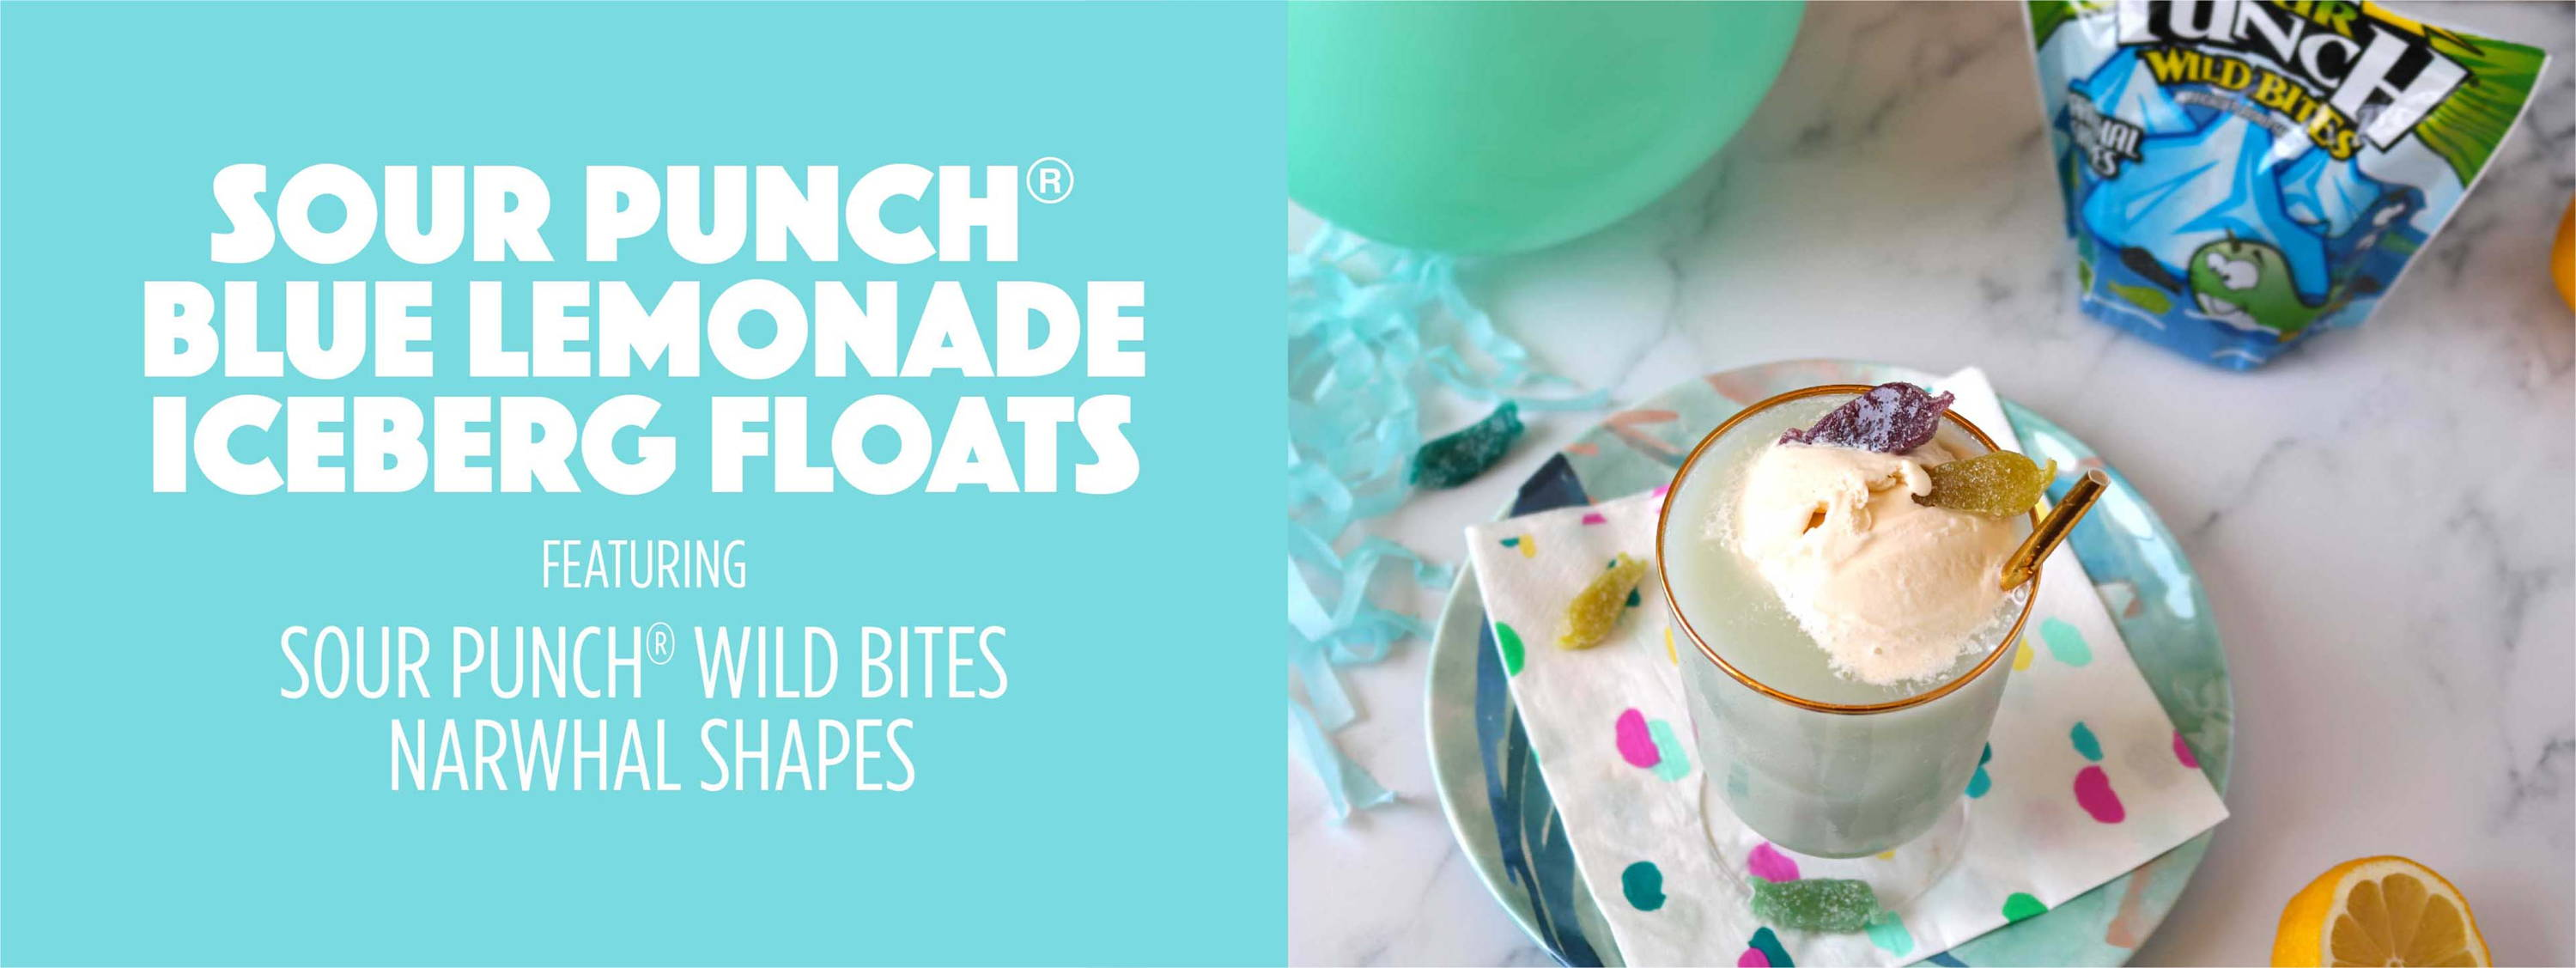 Sour Punch Blue Lemonade Iceberg Floats featuring Sour Punch Wild Bites Narwhal Shapes